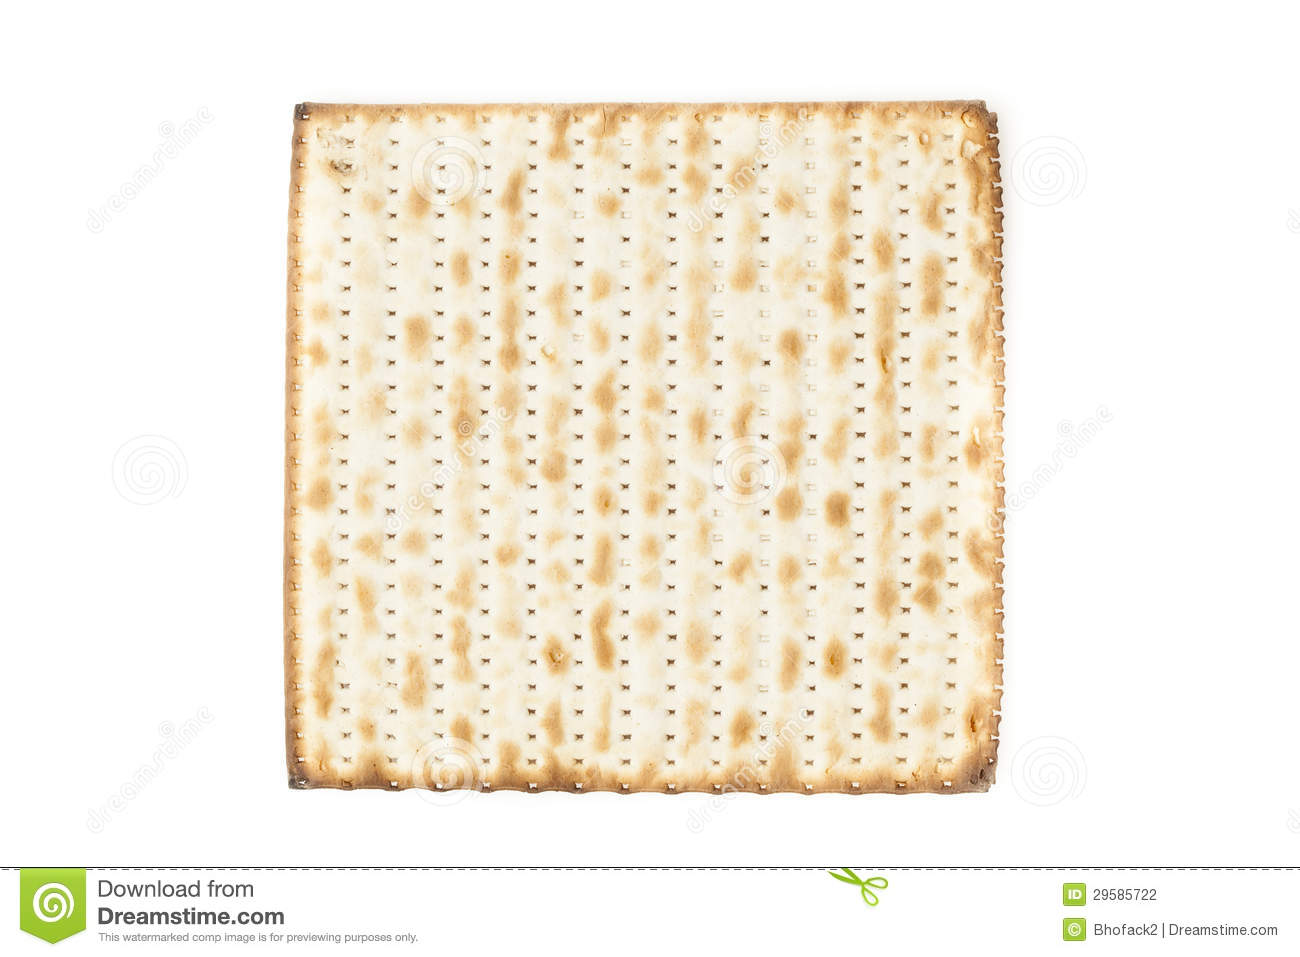 Homemade Kosher Matzo Crackers made with flour and water.